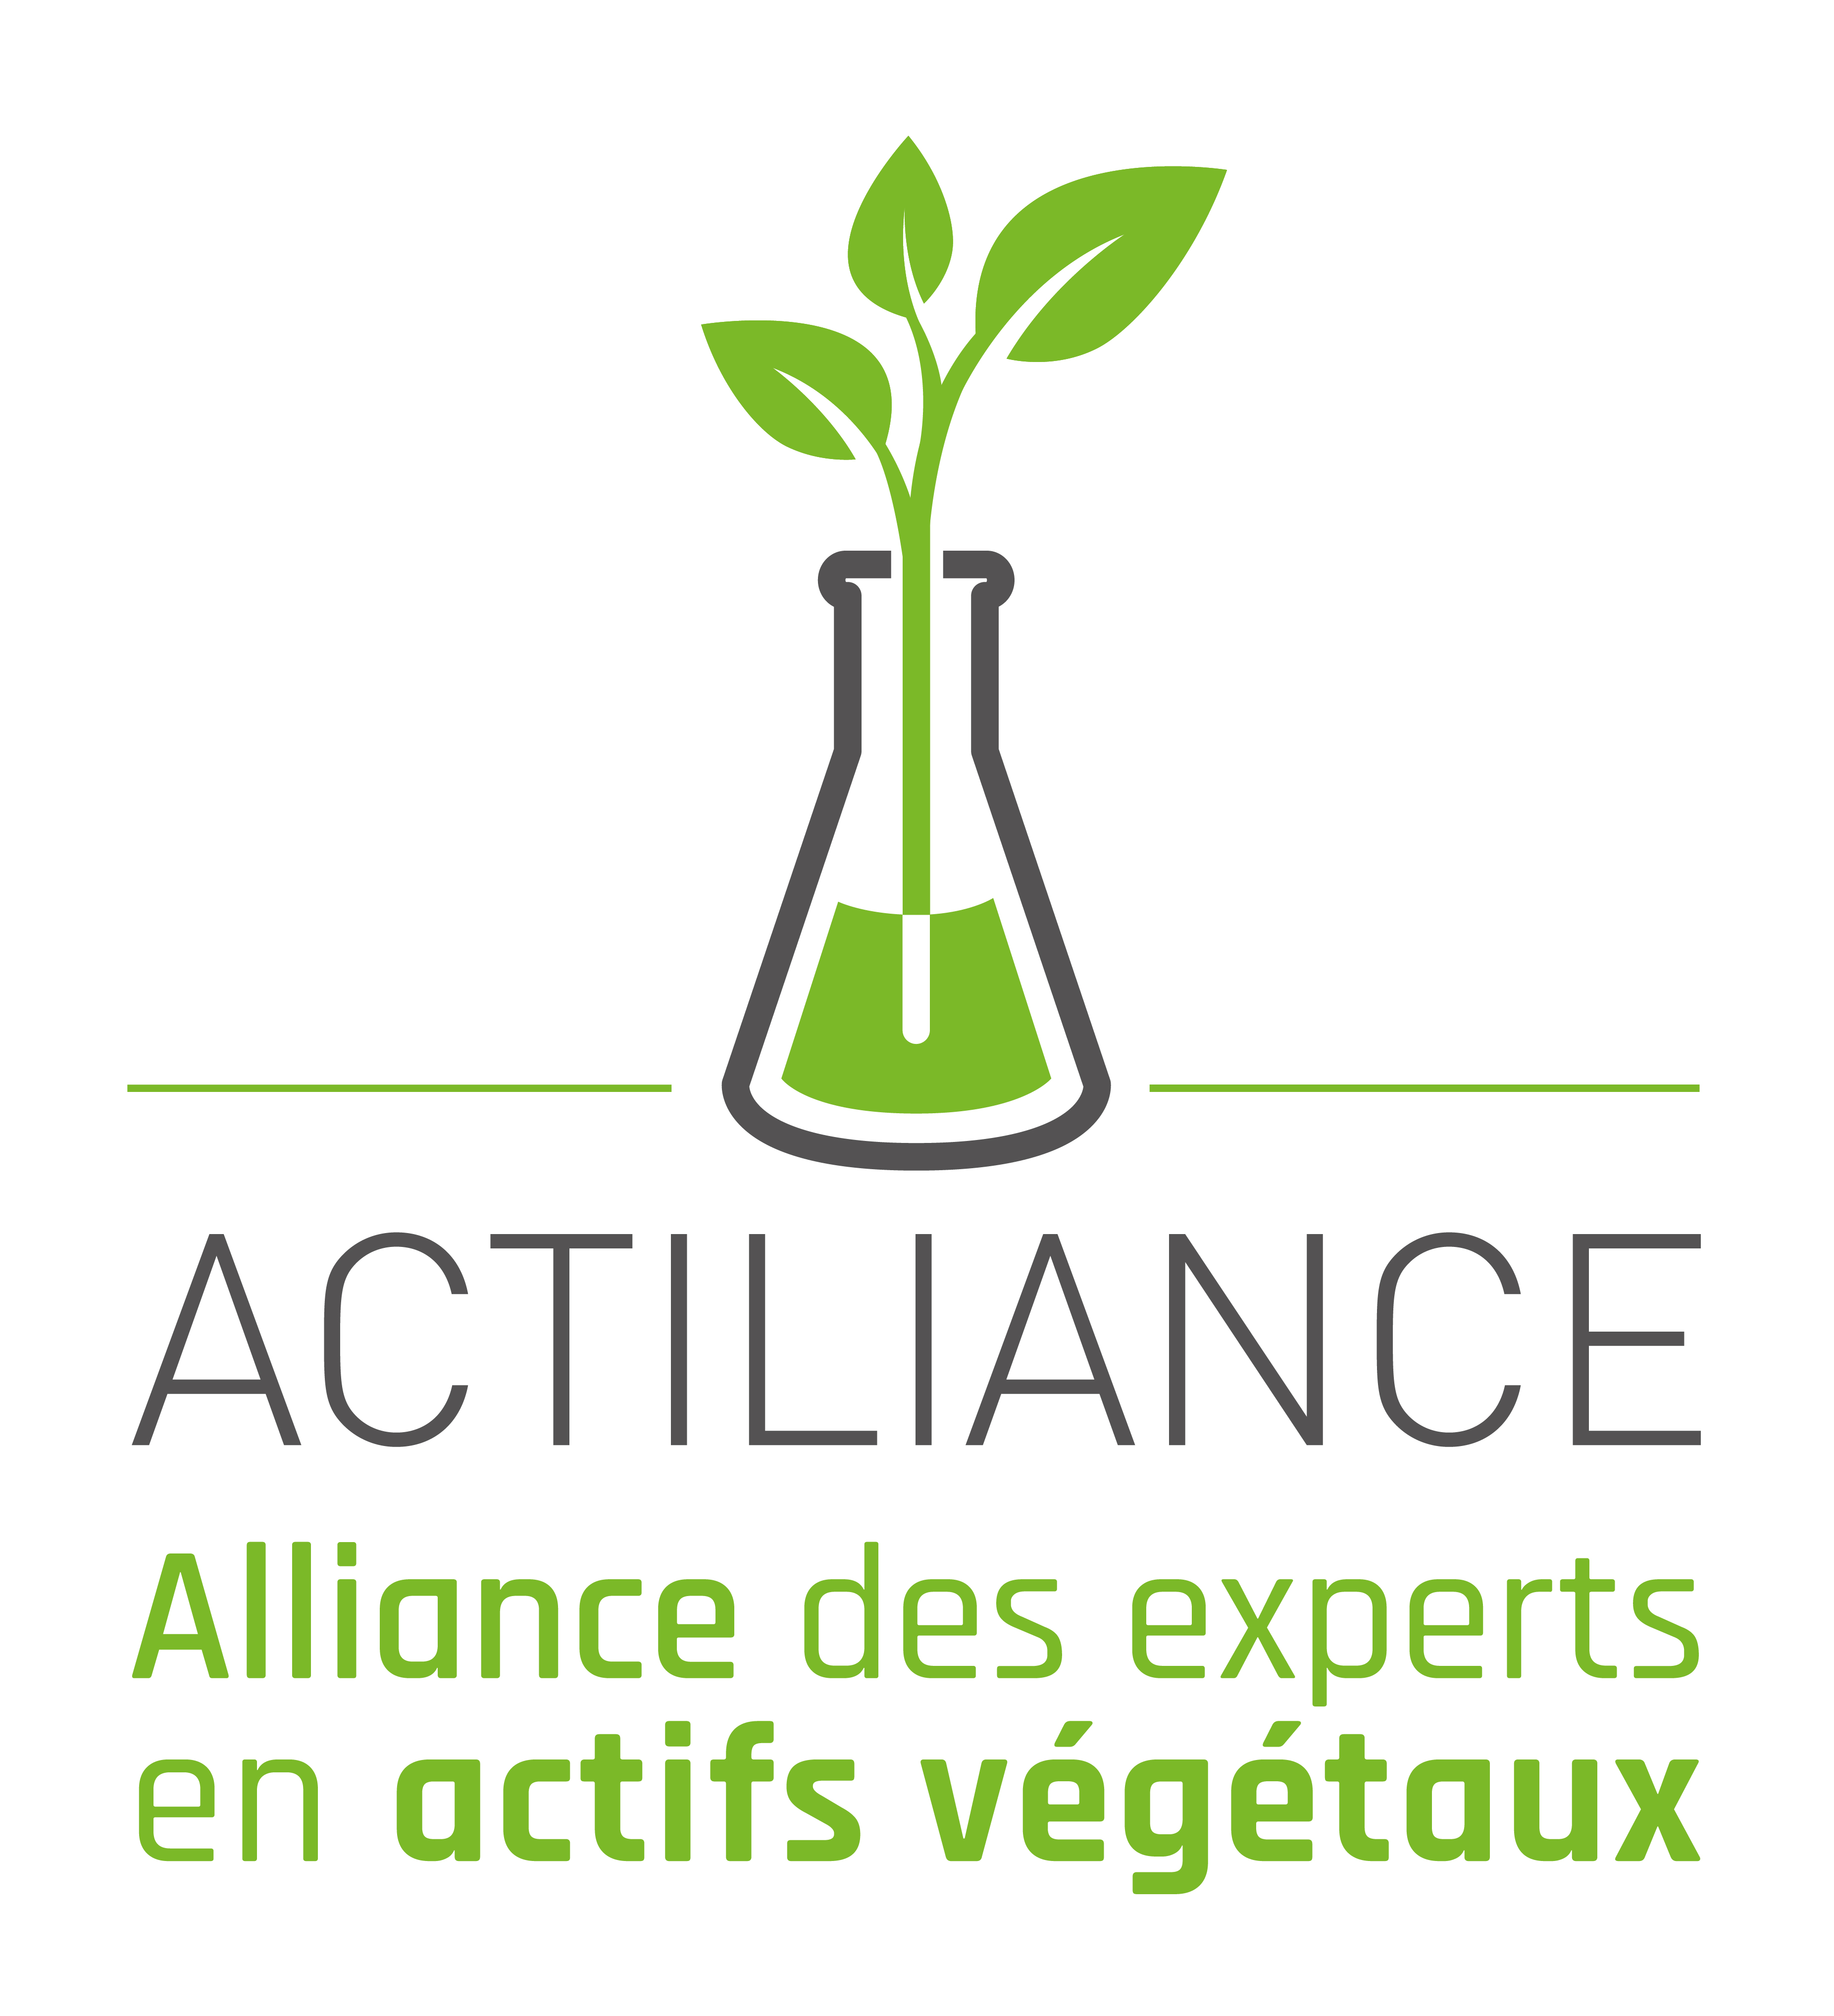 actiliance-logo-hd_rvb